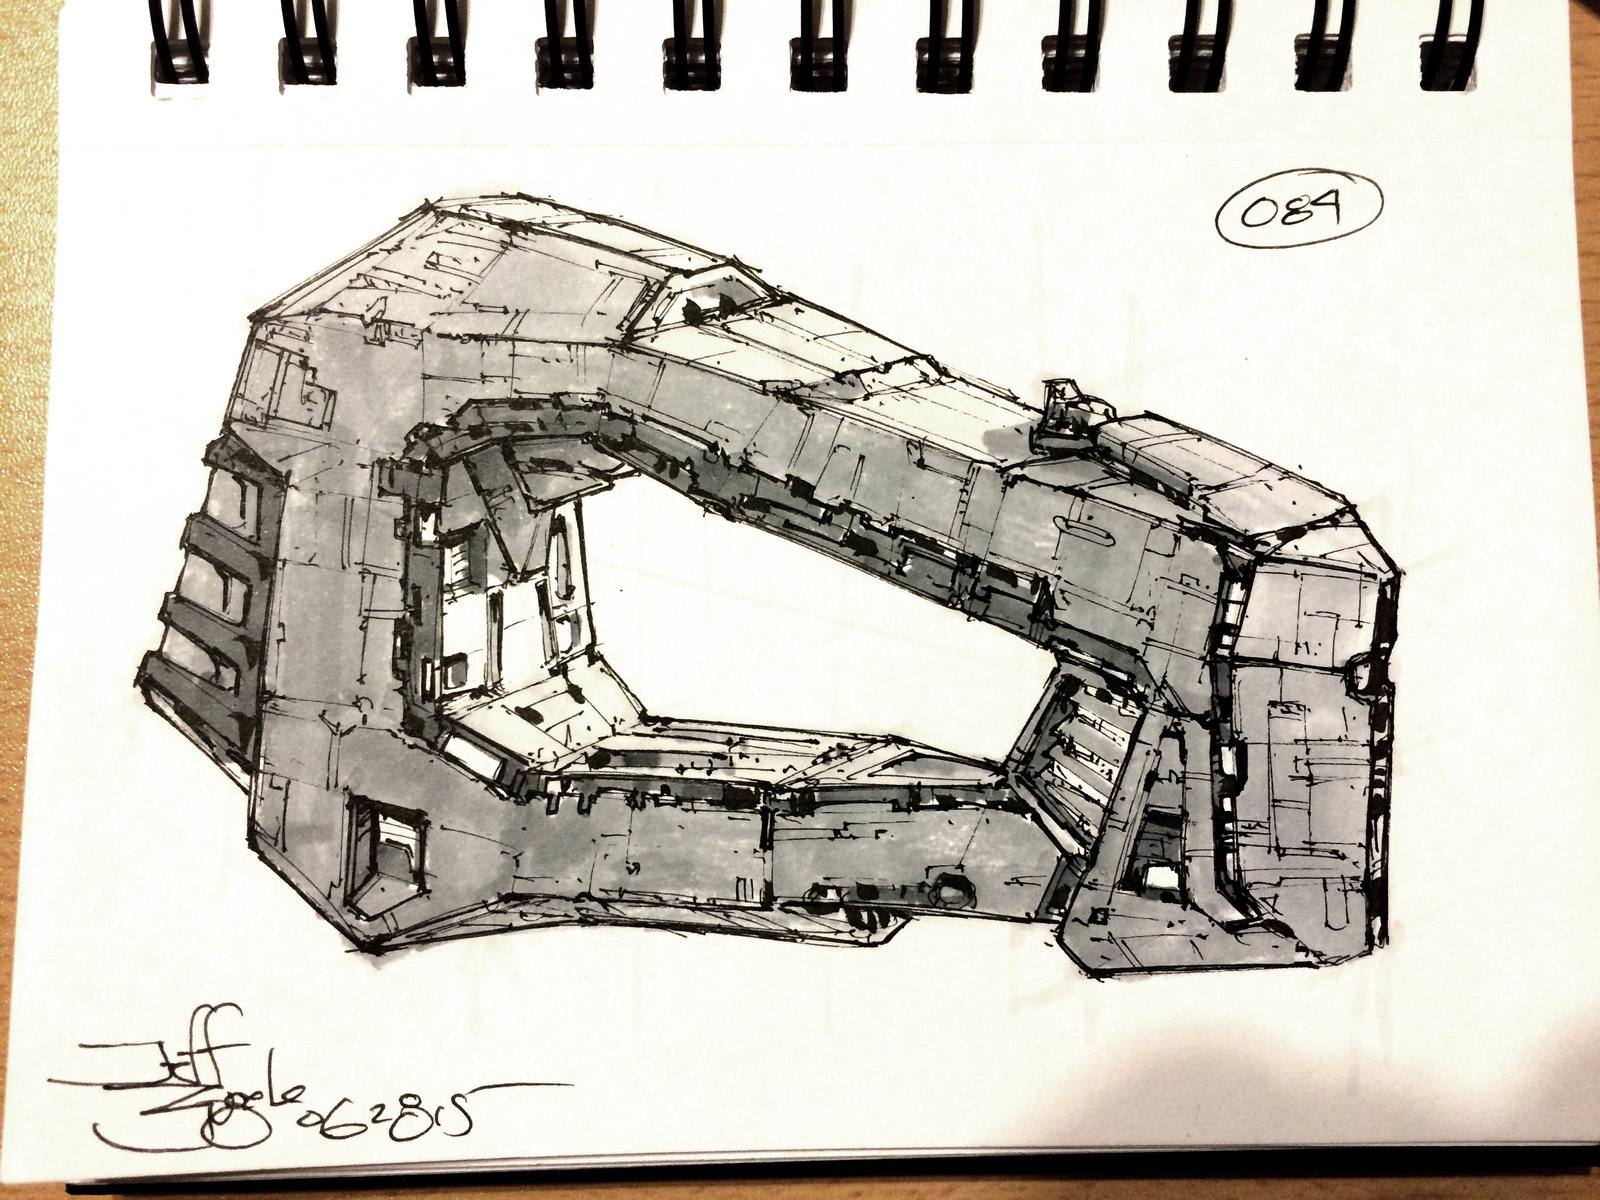 SpaceshipADay 084